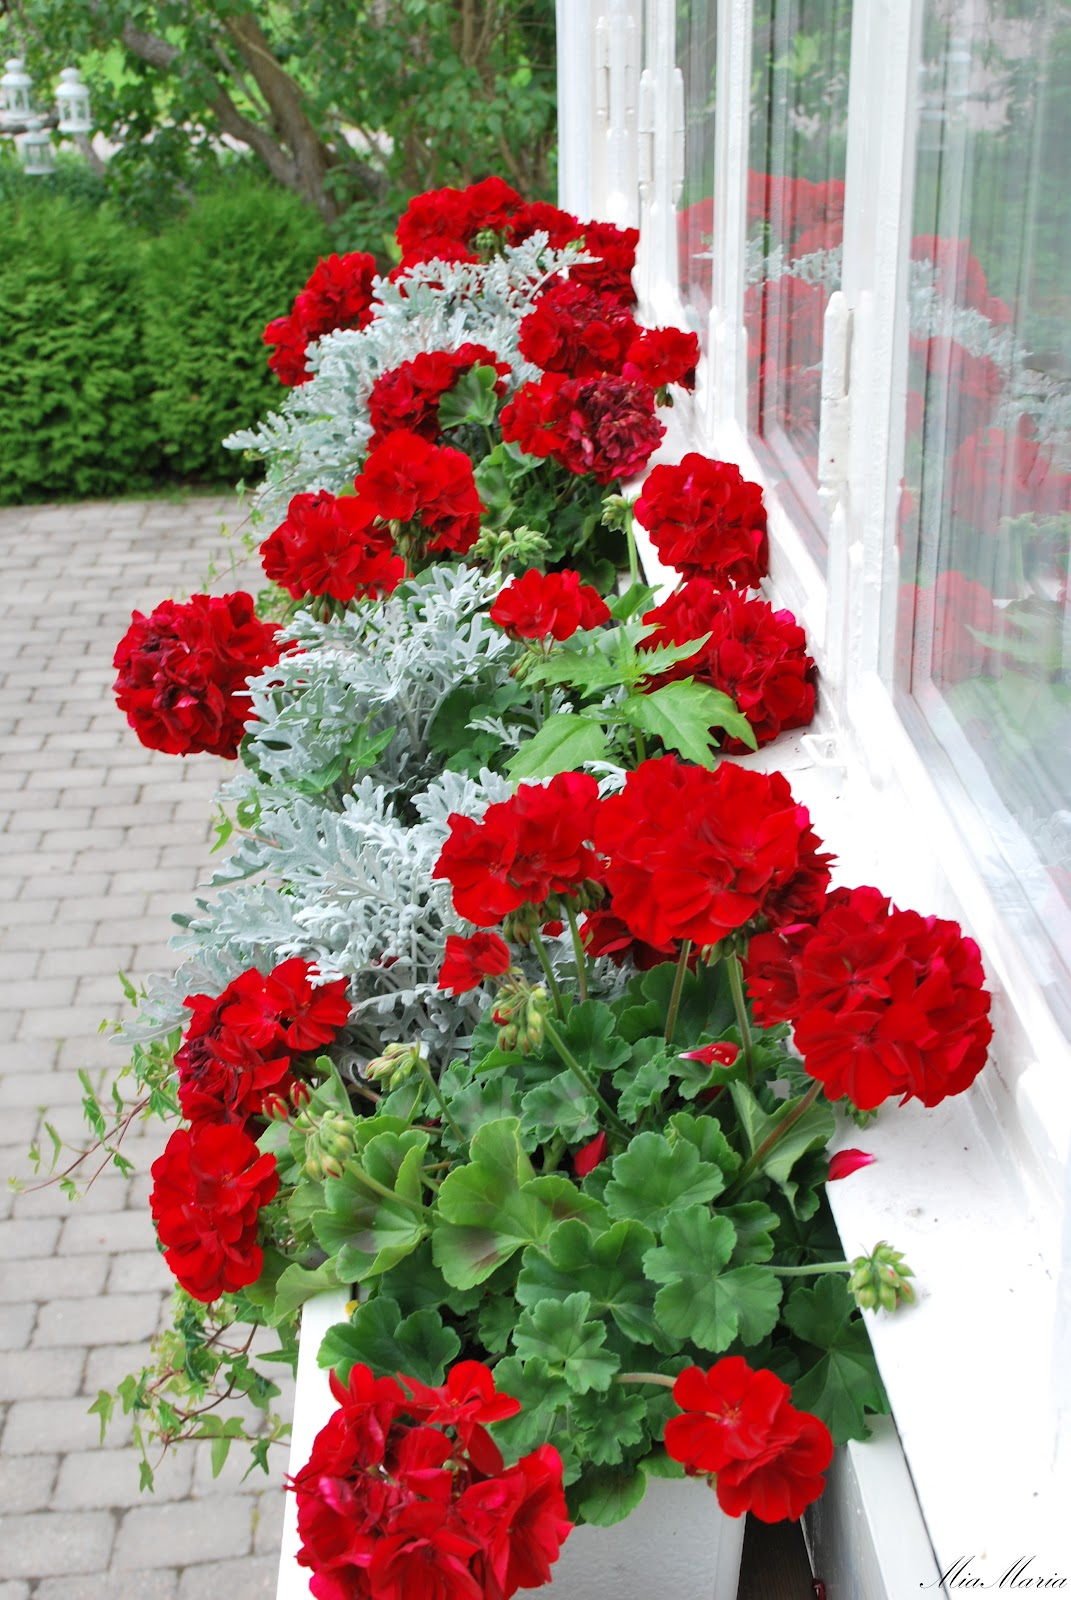 Red geraniums on pinterest geraniums window boxes and gardens - Care geraniums flourishing balcony porch ...